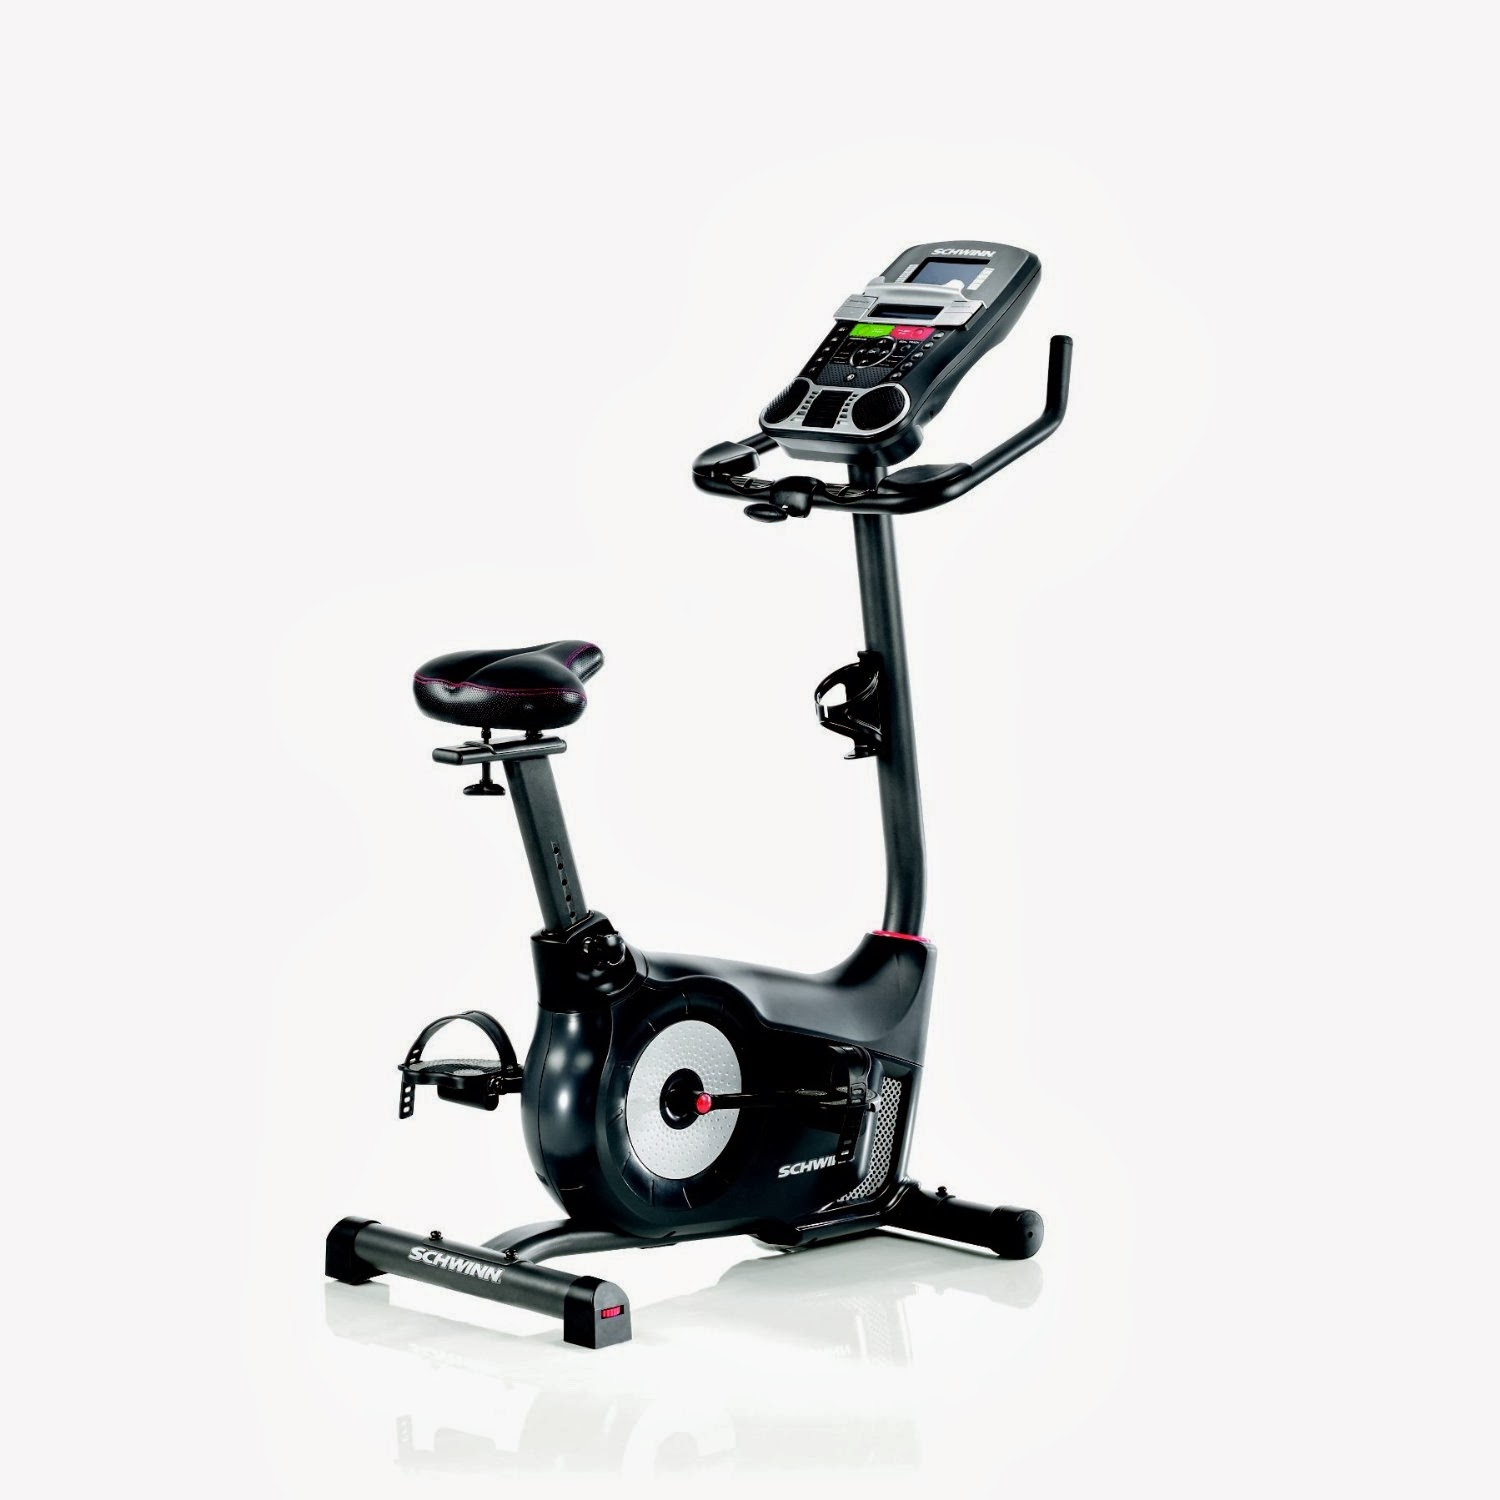 The new Schwinn 170 Upright Exercise Bike helps you get fit, burn calories and lose weight